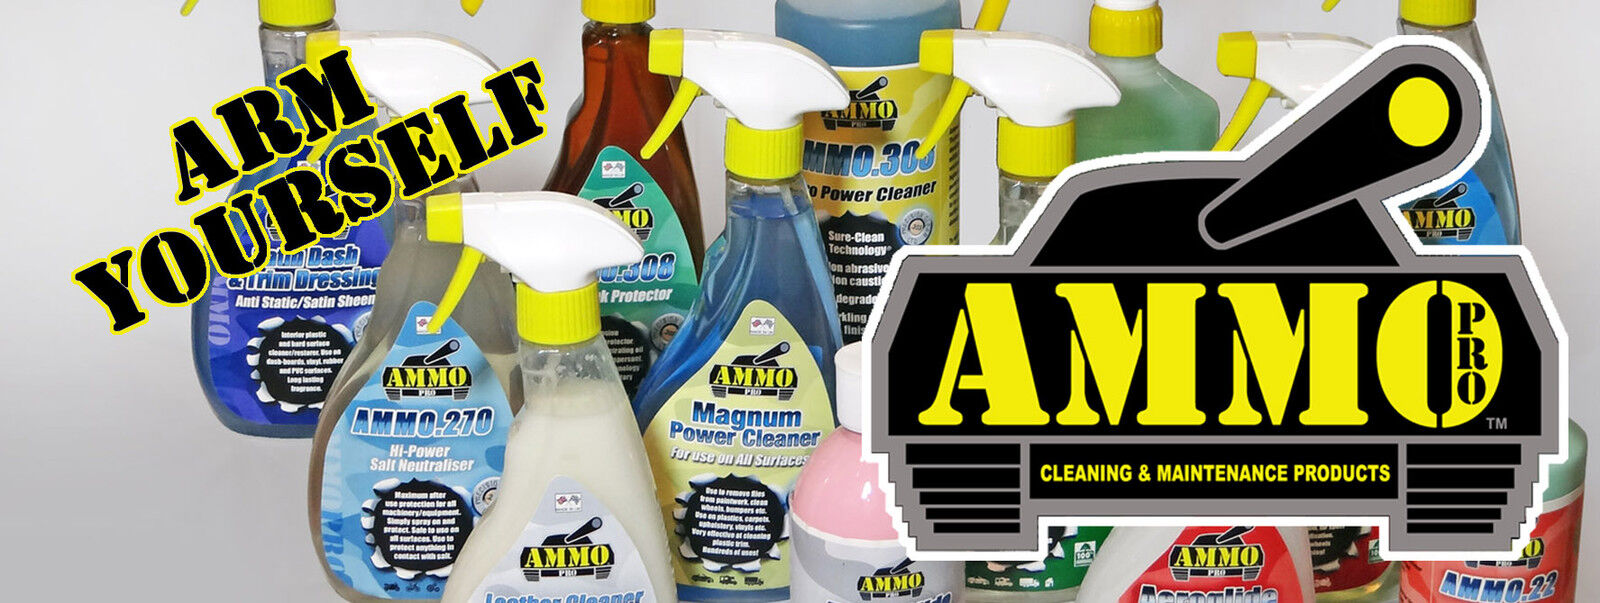 Ammo Car Cleaning Products Uk